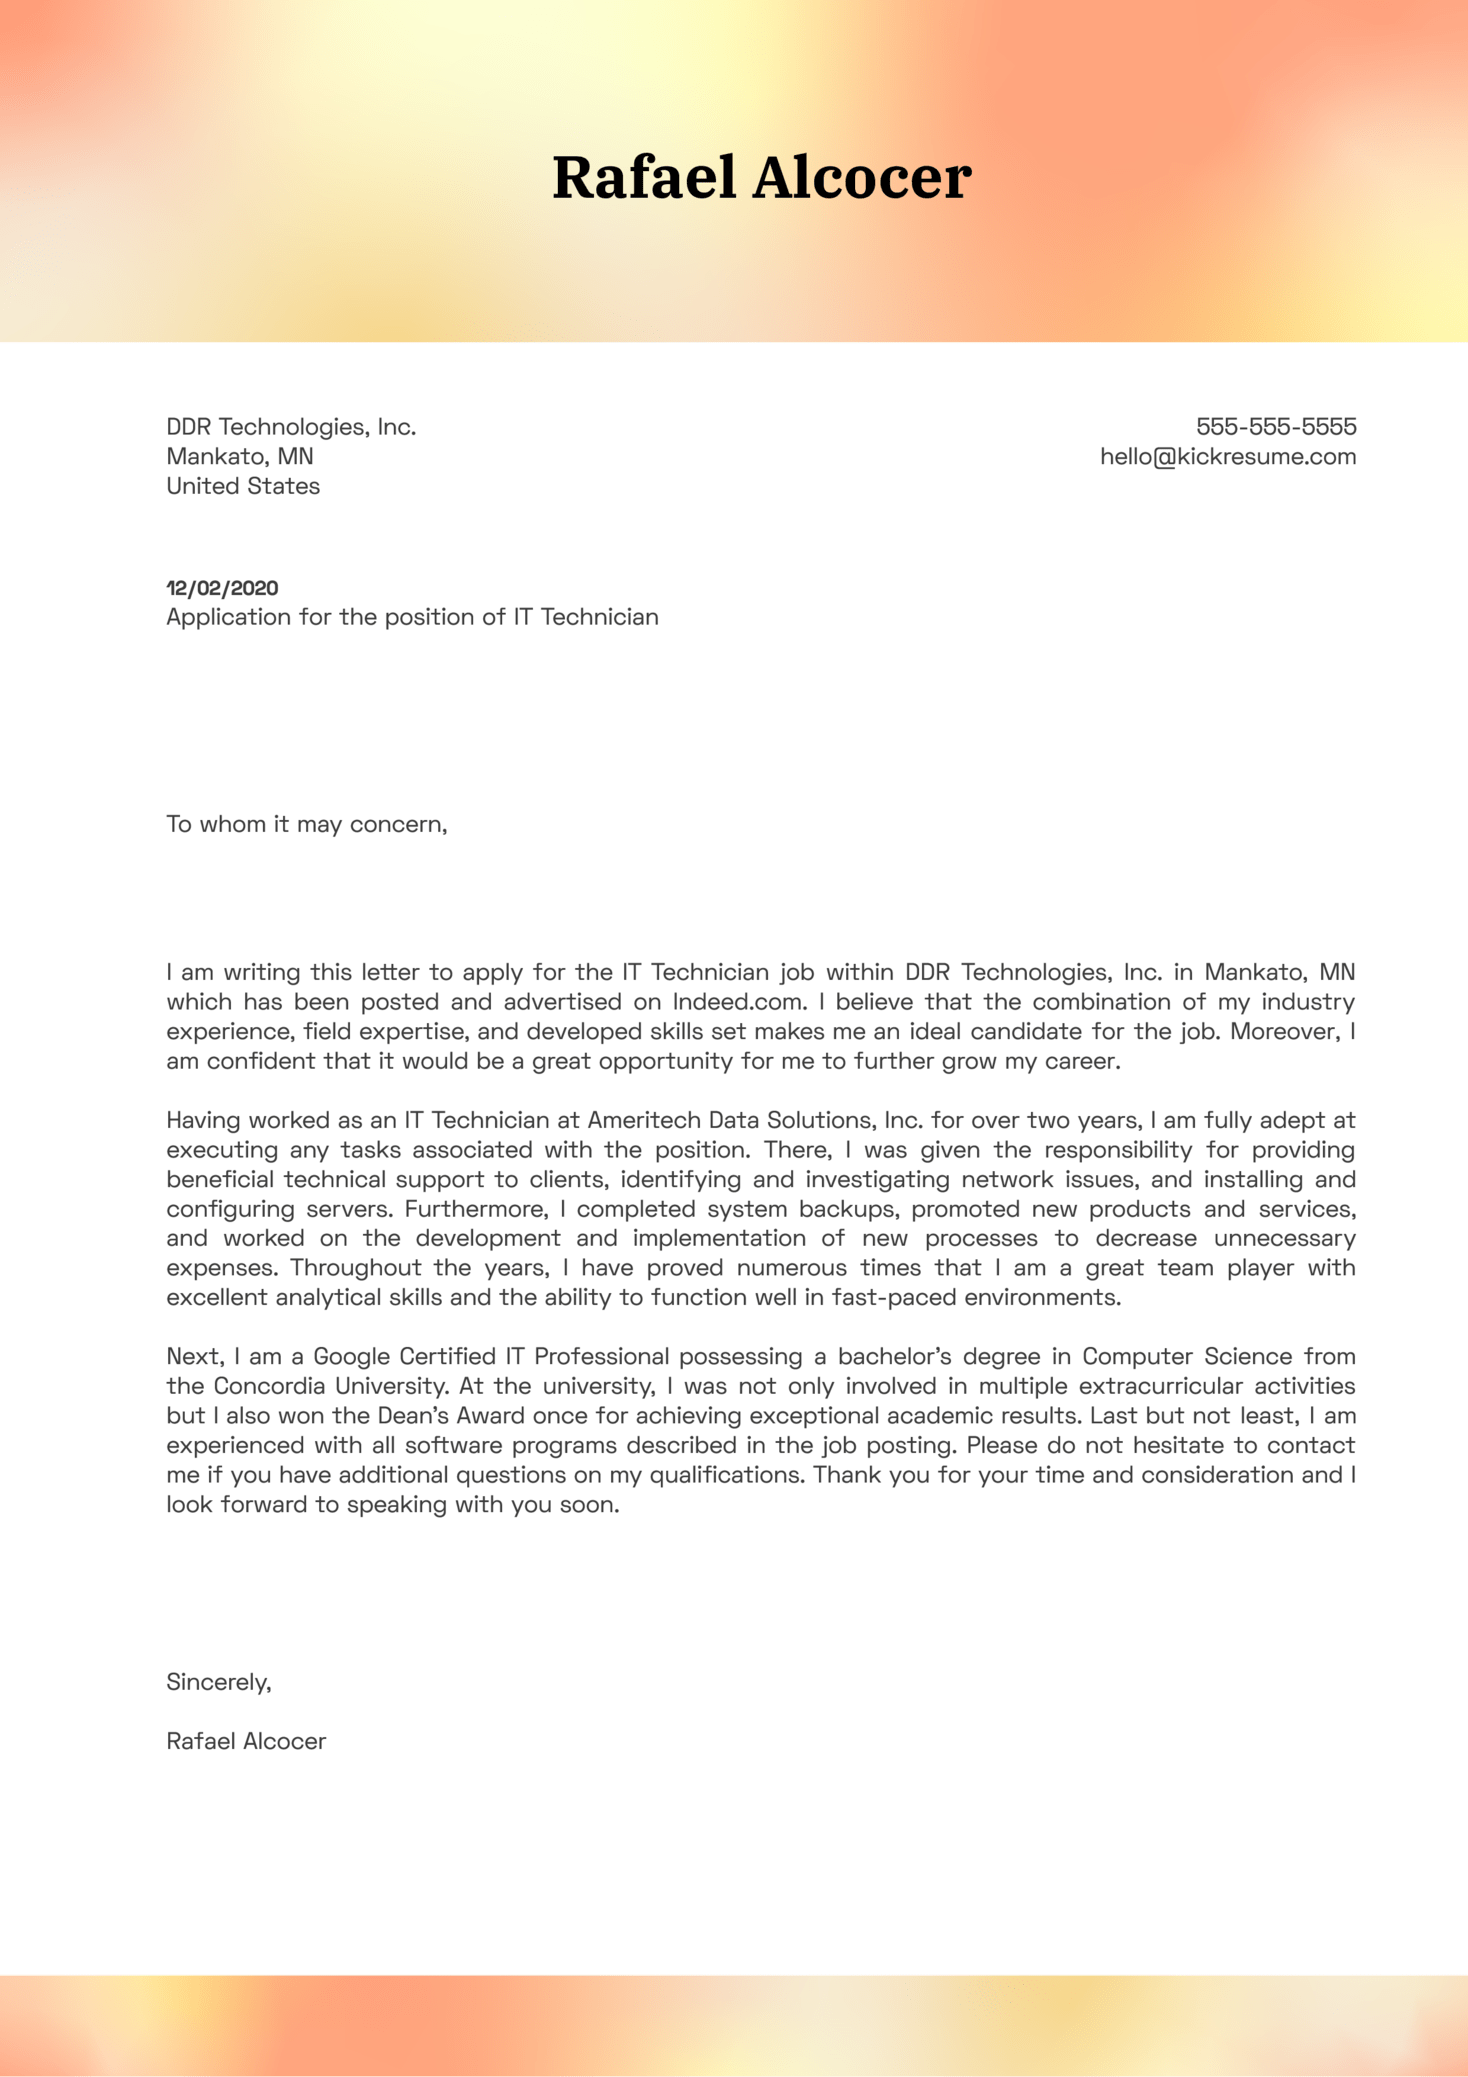 IT Technician Cover Letter Example